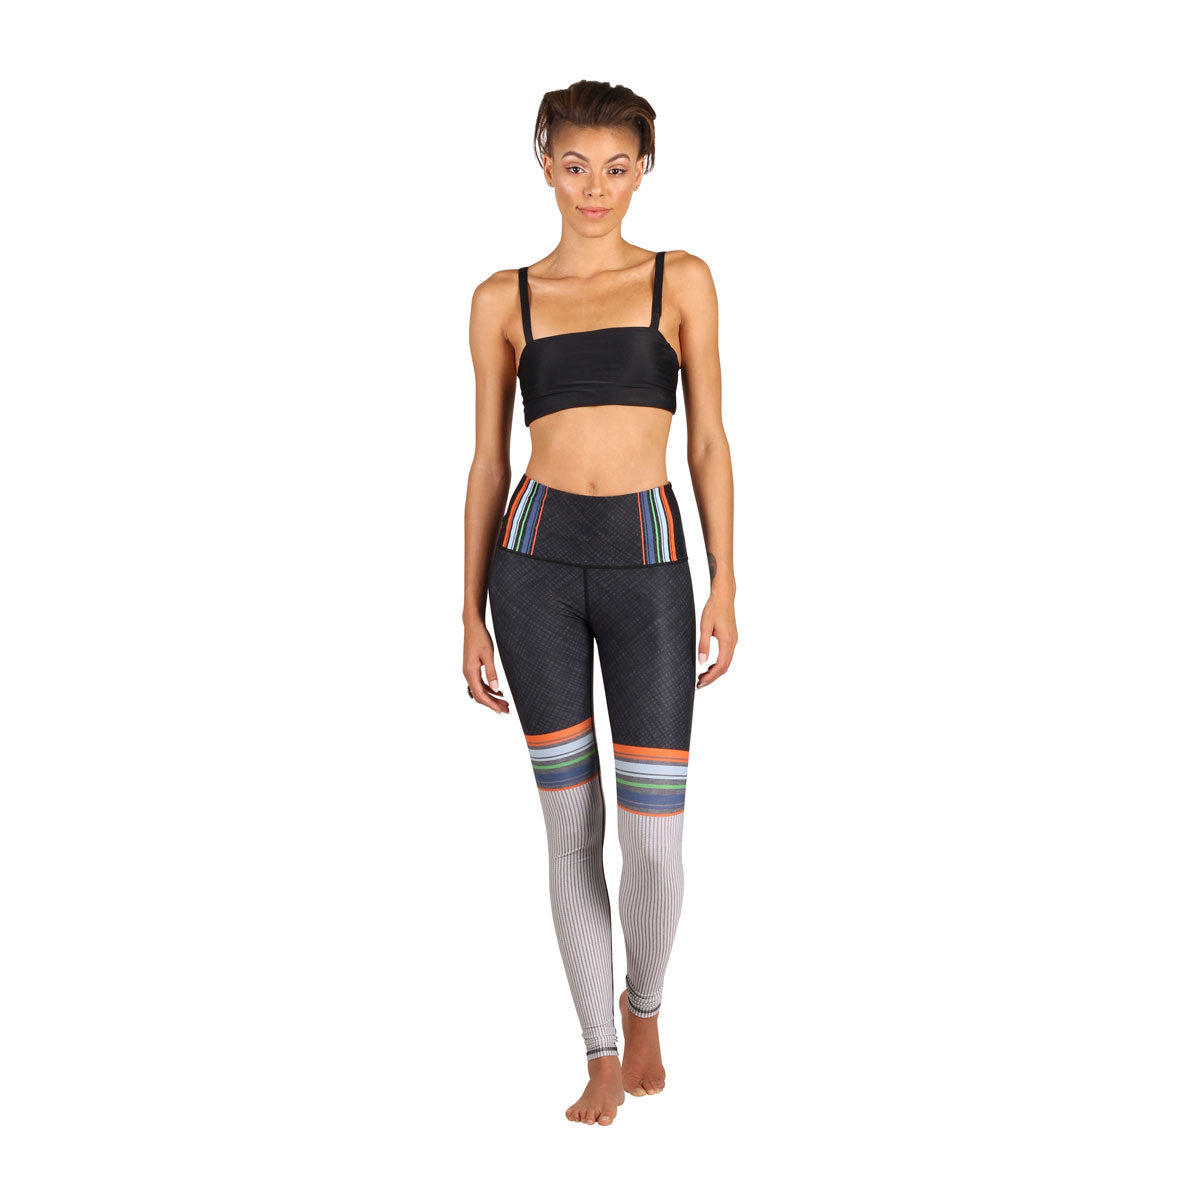 YOGA DEMOCRACY Chelsea Crew Eco Yoga Leggings